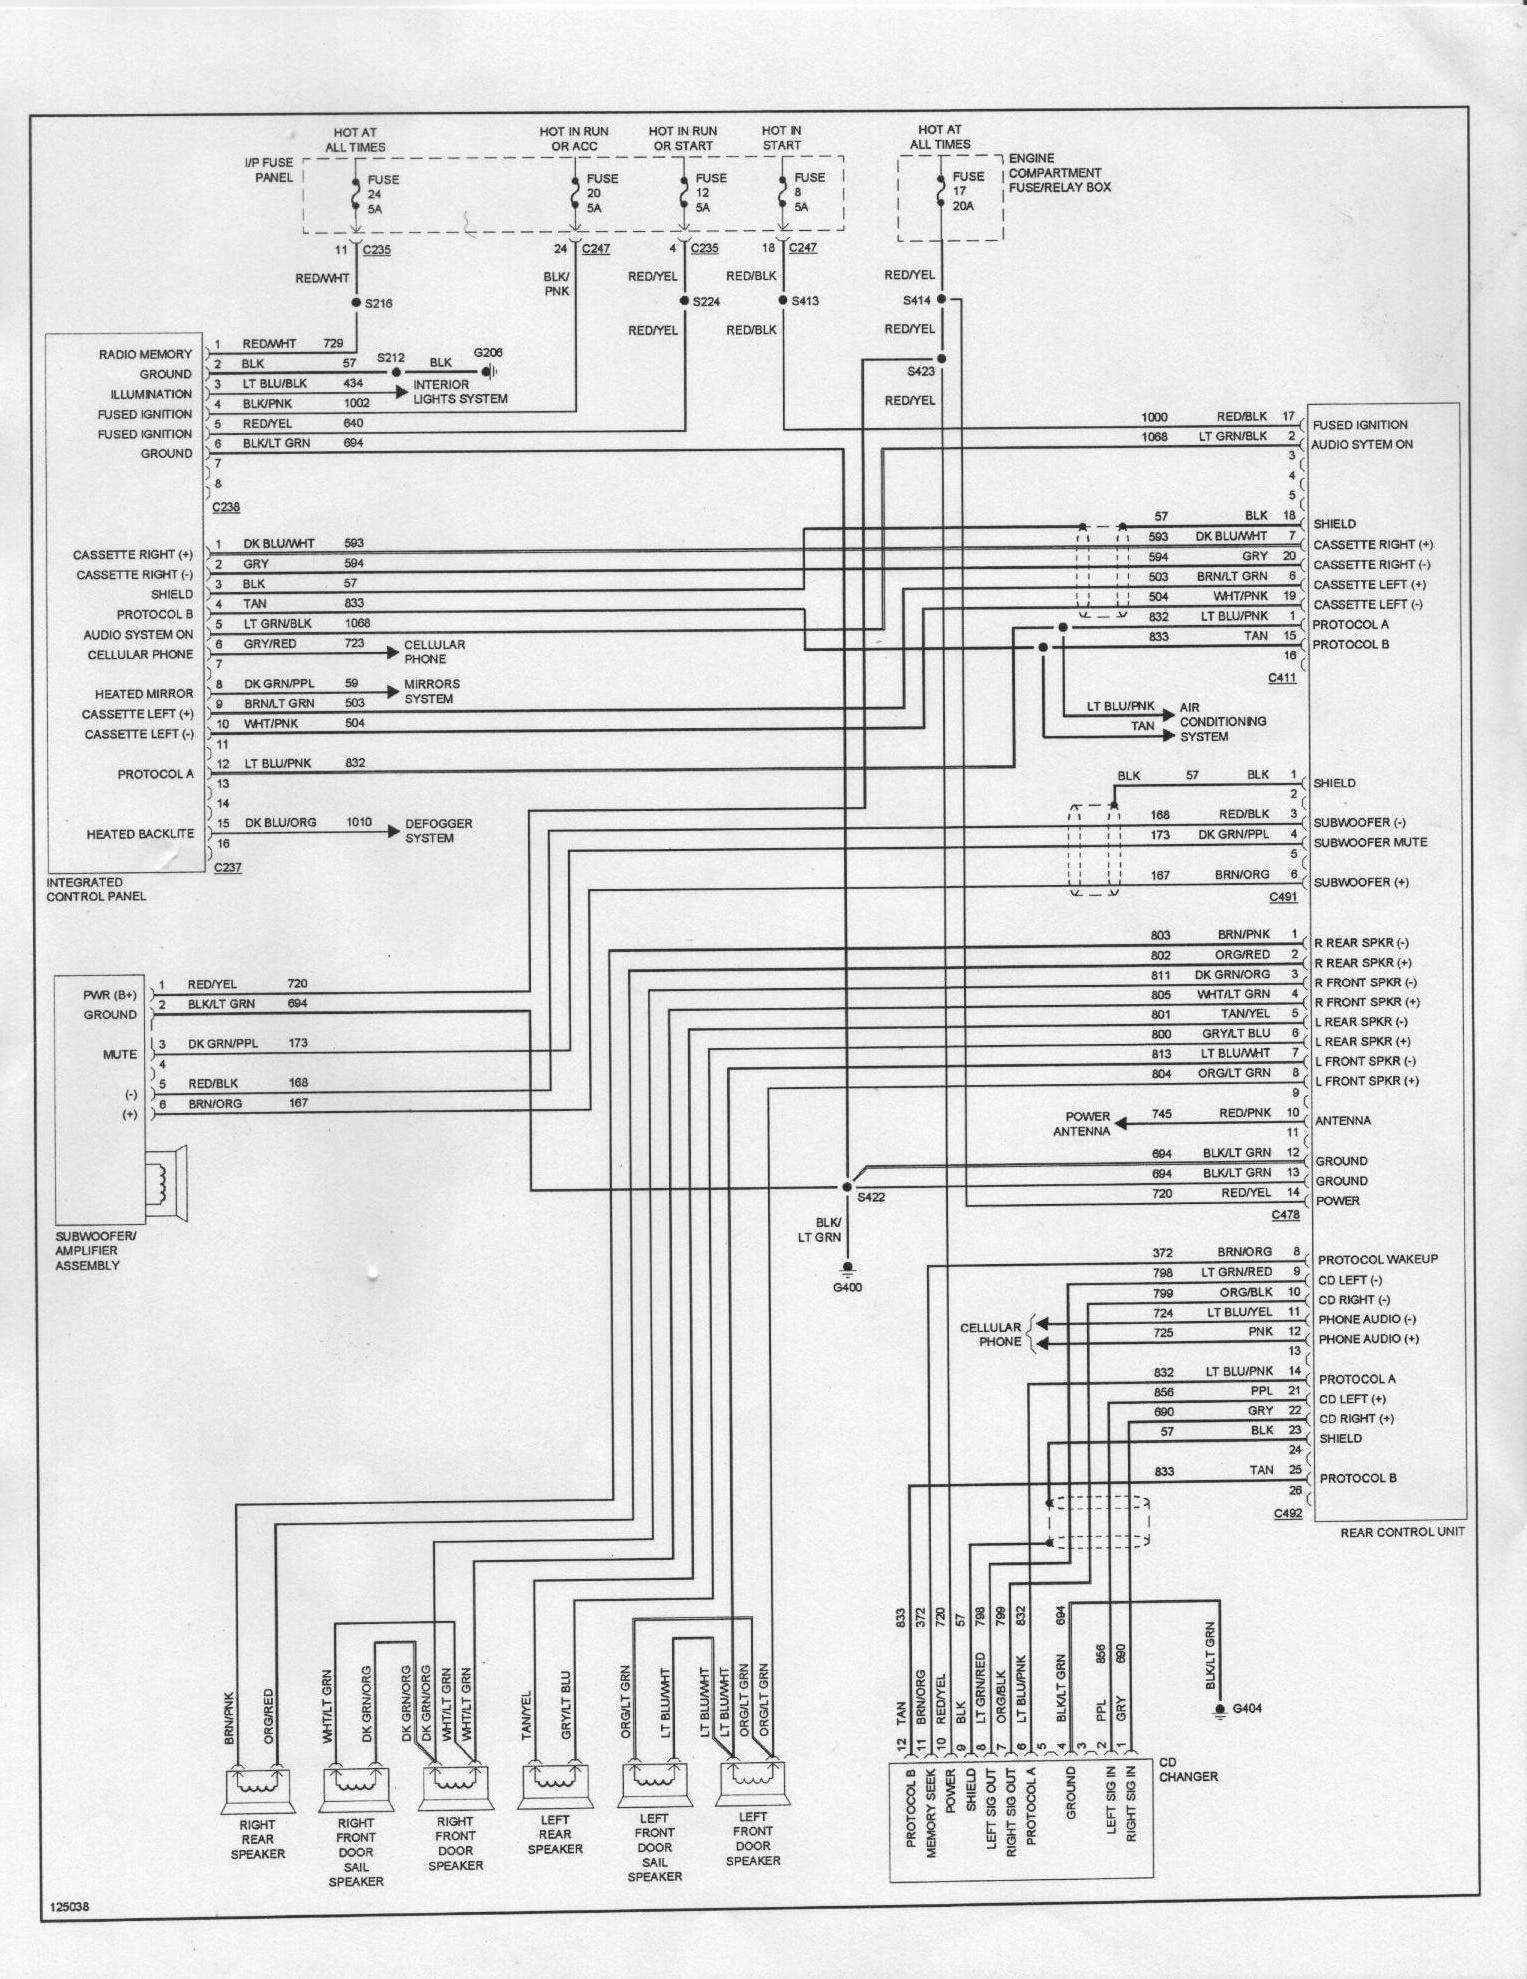 2005 Taurus Wiring Diagram Wiring Diagram Explained 02 Ford Taurus Wiring  Diagram 02 Taurus Wiring Diagram